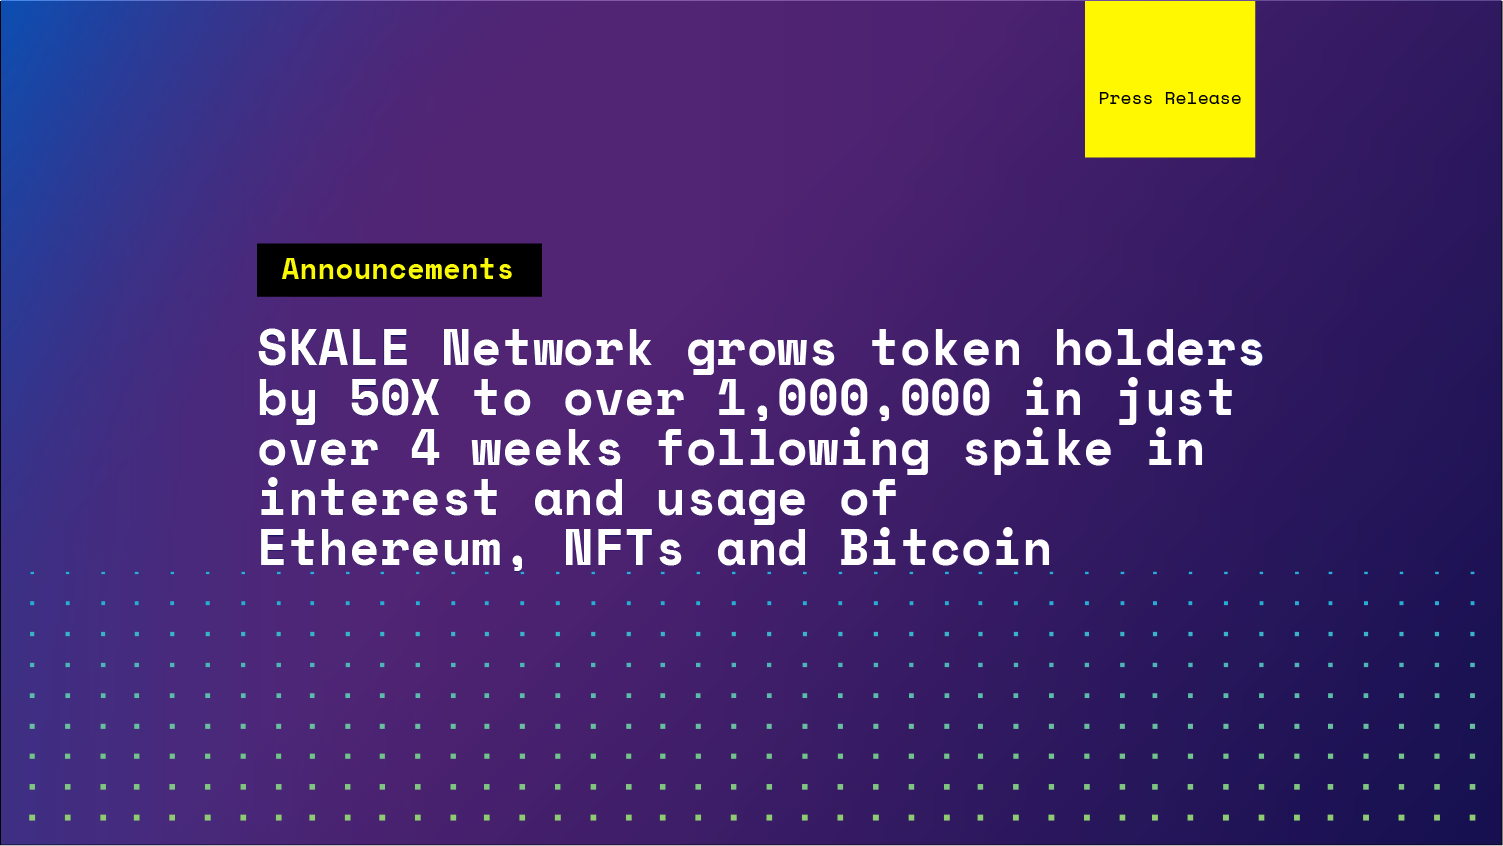 SKALE Network grows token holders by 50X to over 1,000,000 in just over 4 weeks following spike in interest and usage of Ethereum, NFTs and Bitcoin